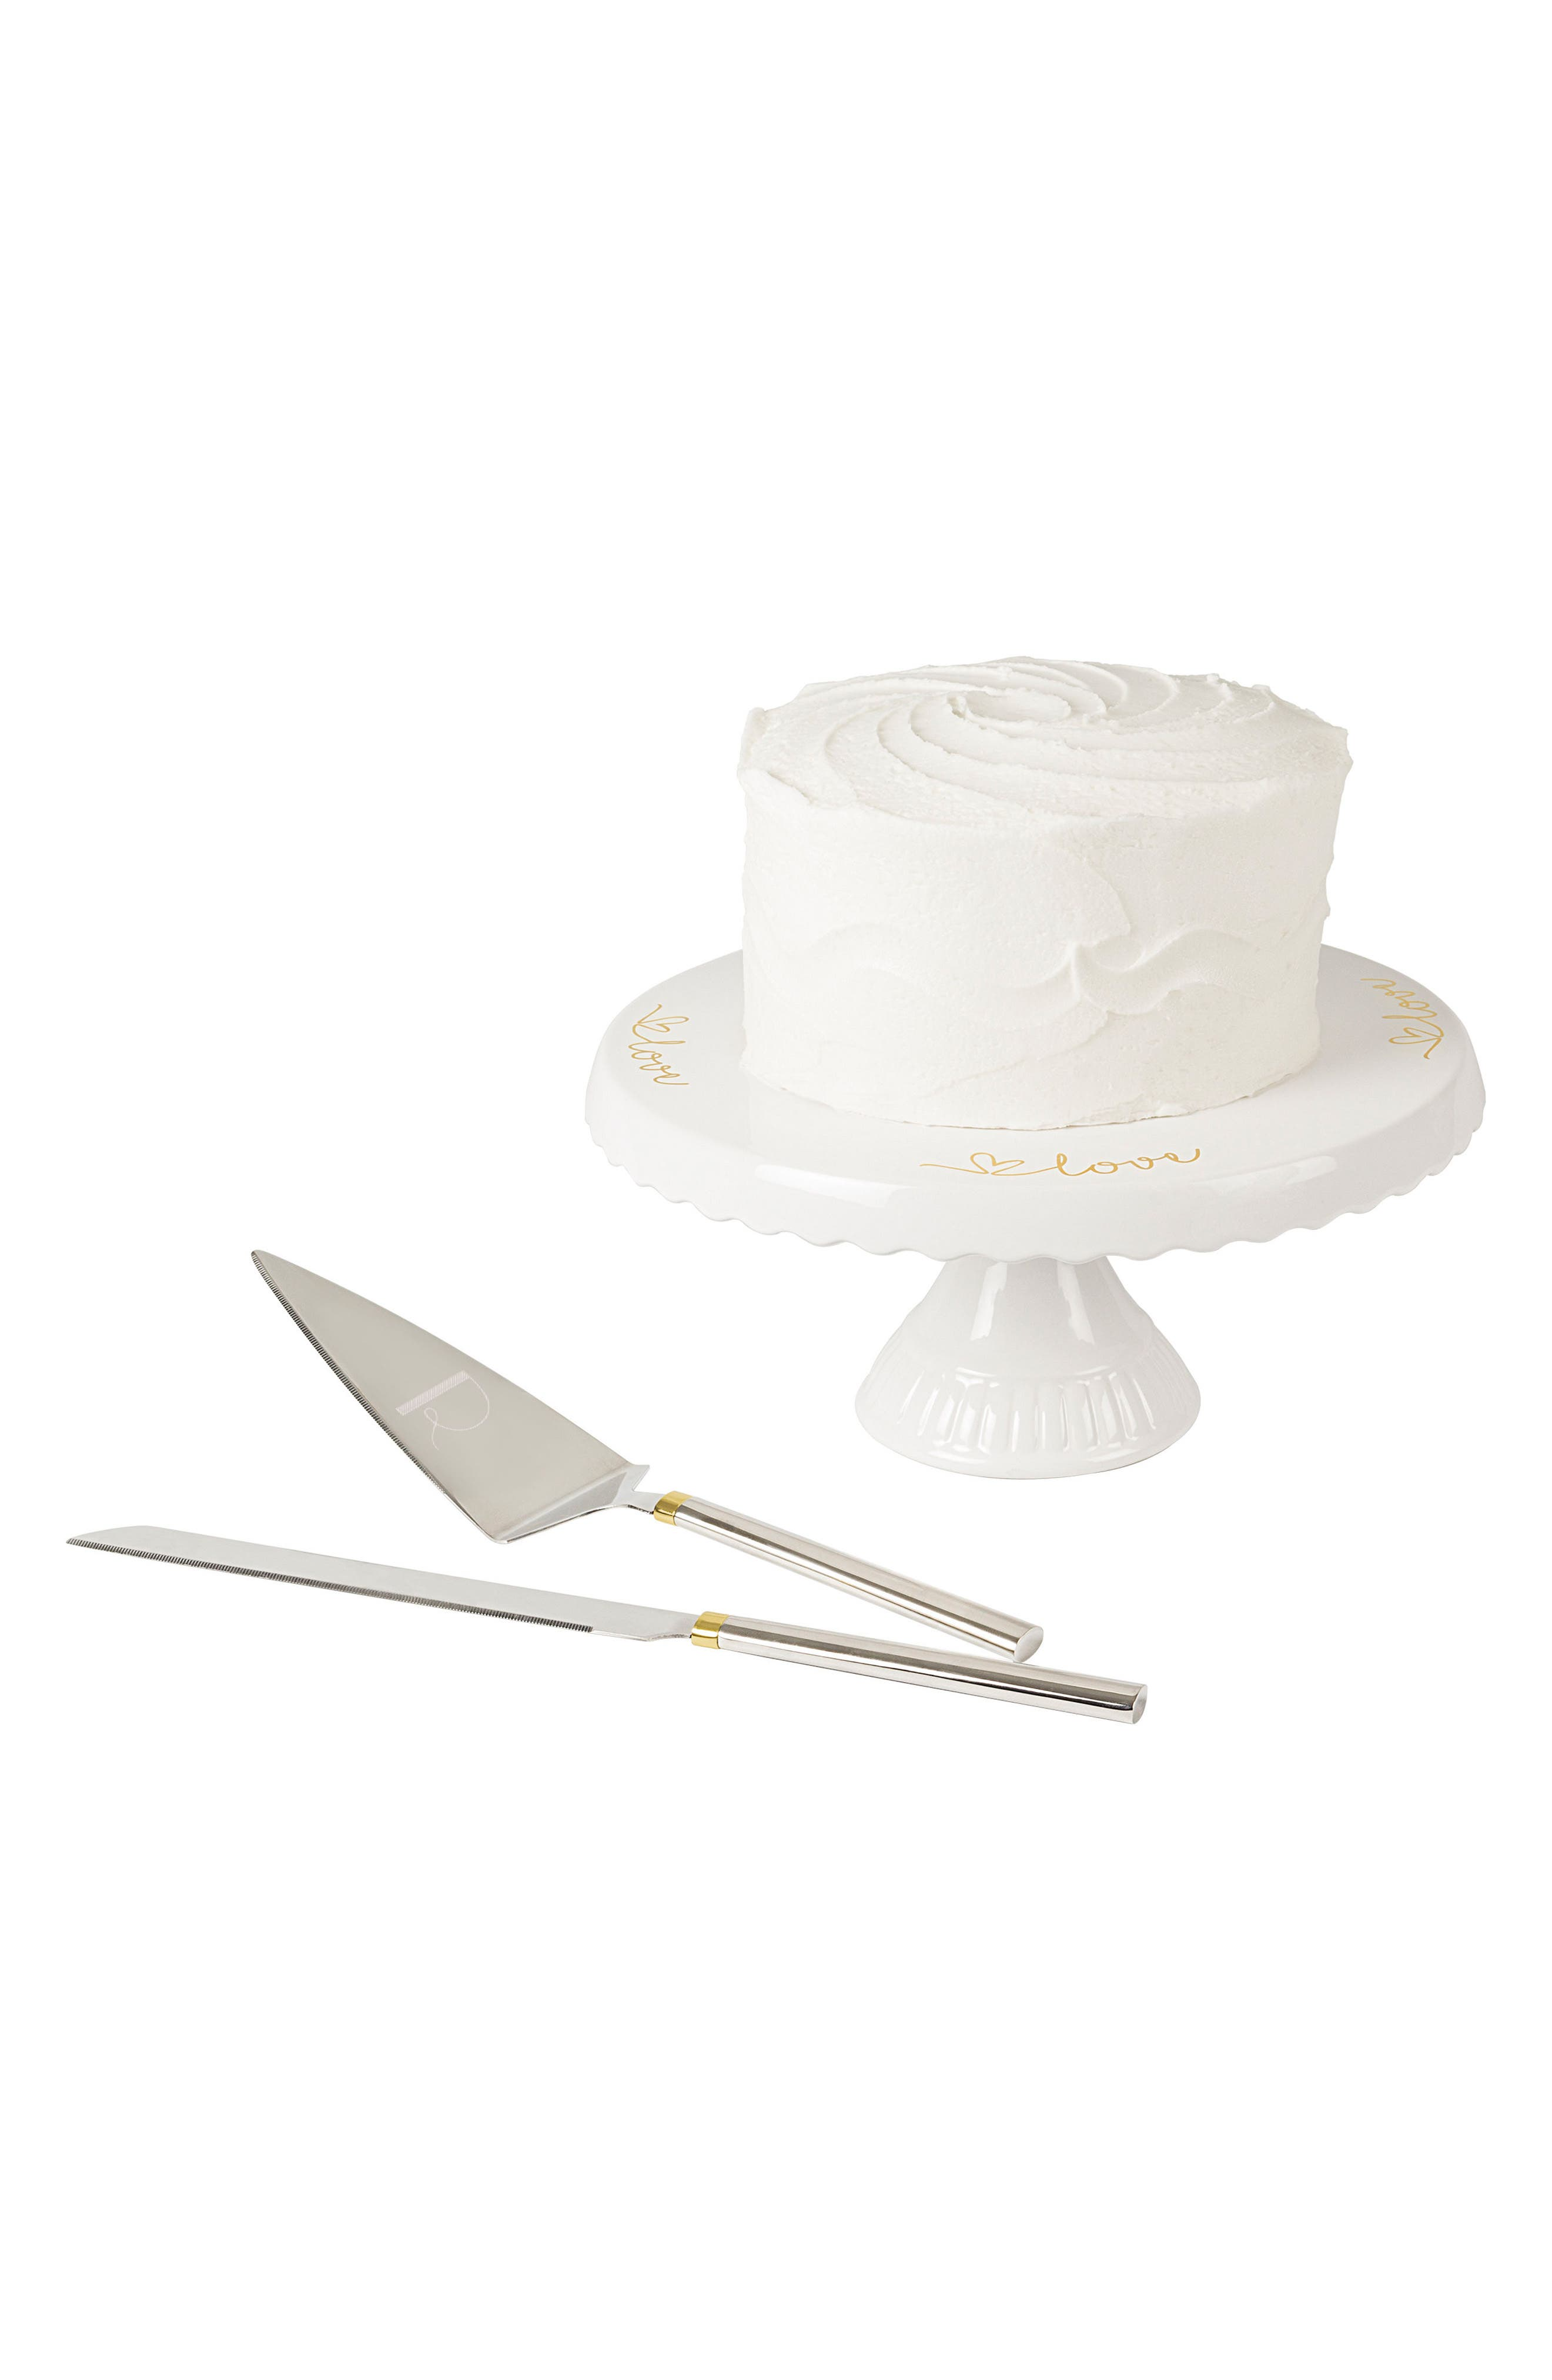 Love Monogram Cake Stand & Server Set,                             Main thumbnail 19, color,